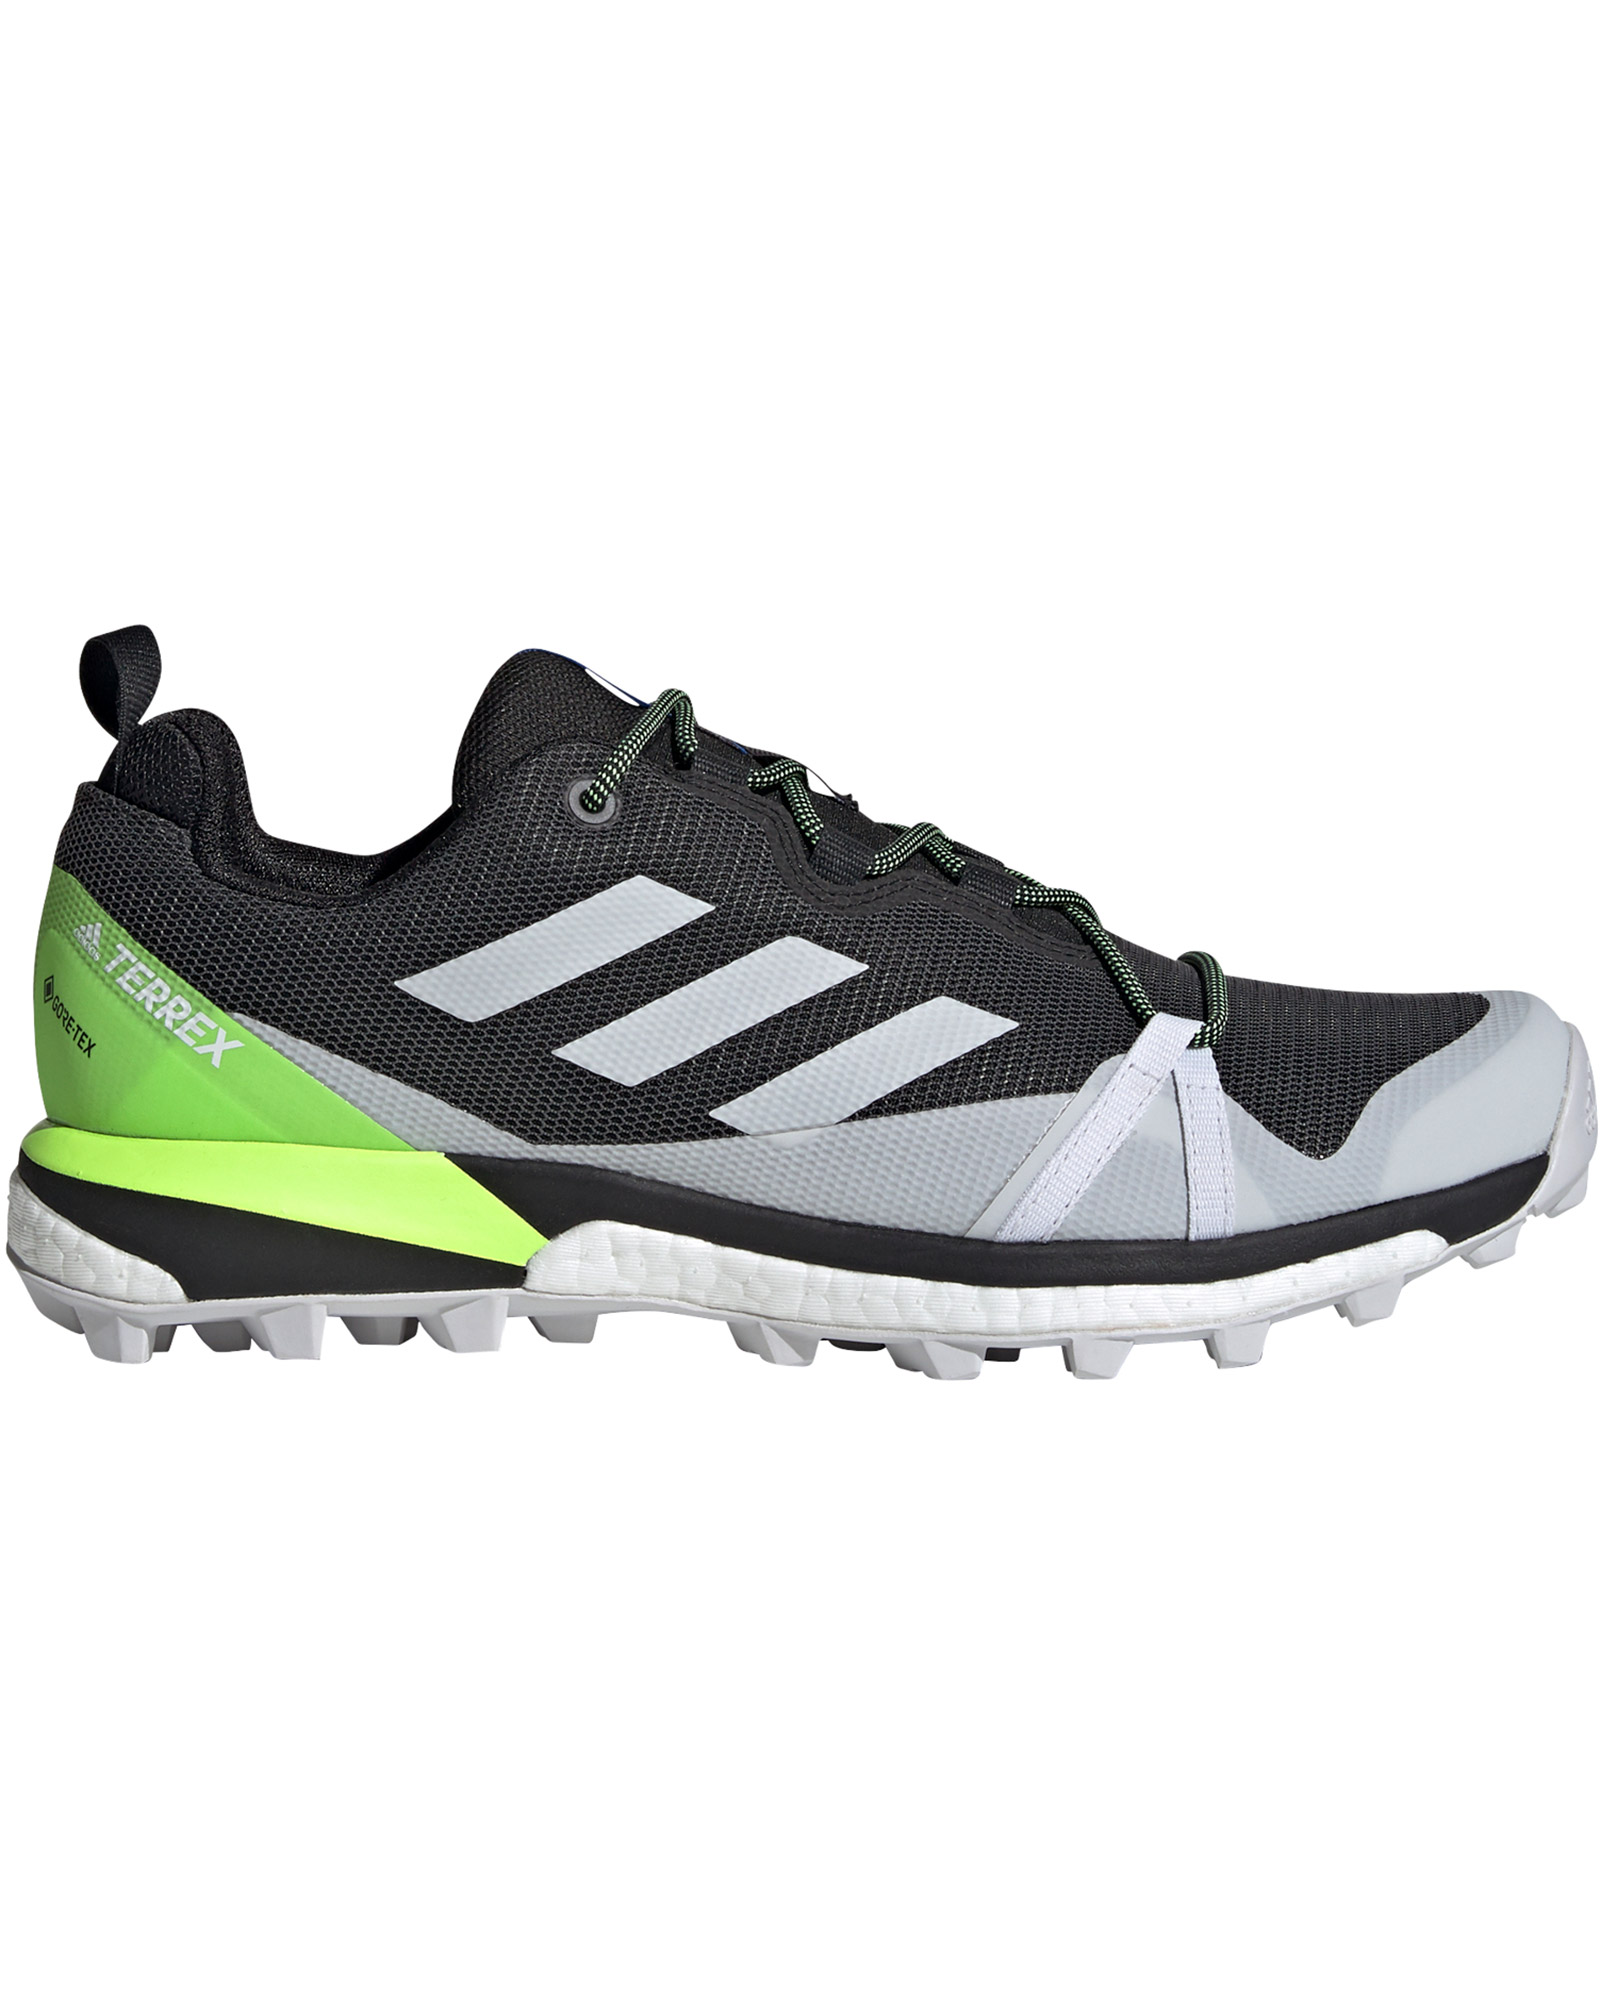 Adidas Terrex Men's Terrex Skychaser LT GORE-TEX Walking Shoes 0